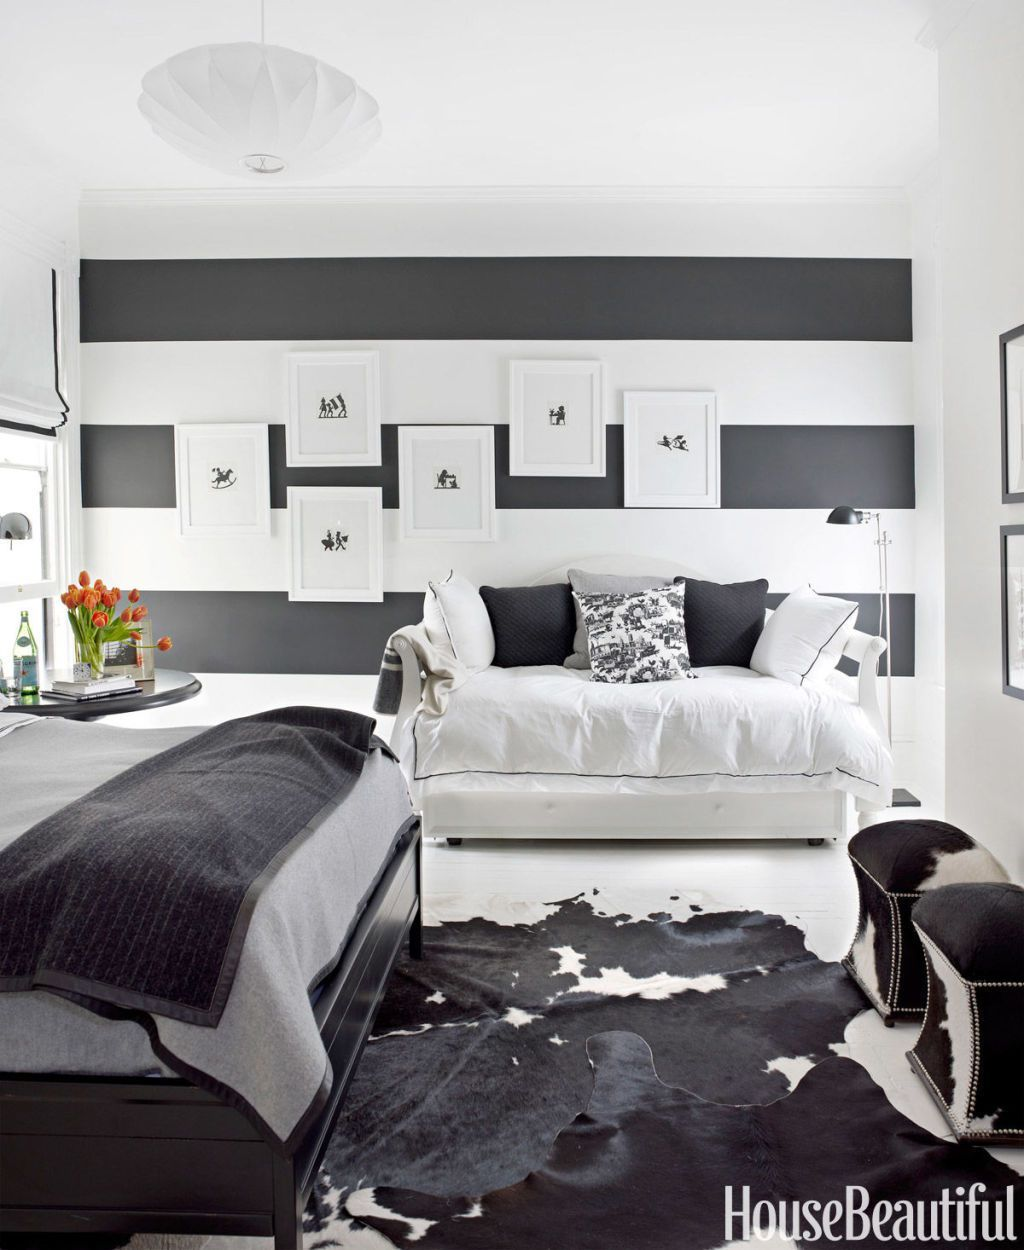 & 15 Beautiful Black and White Bedroom Ideas - Black and White Decor